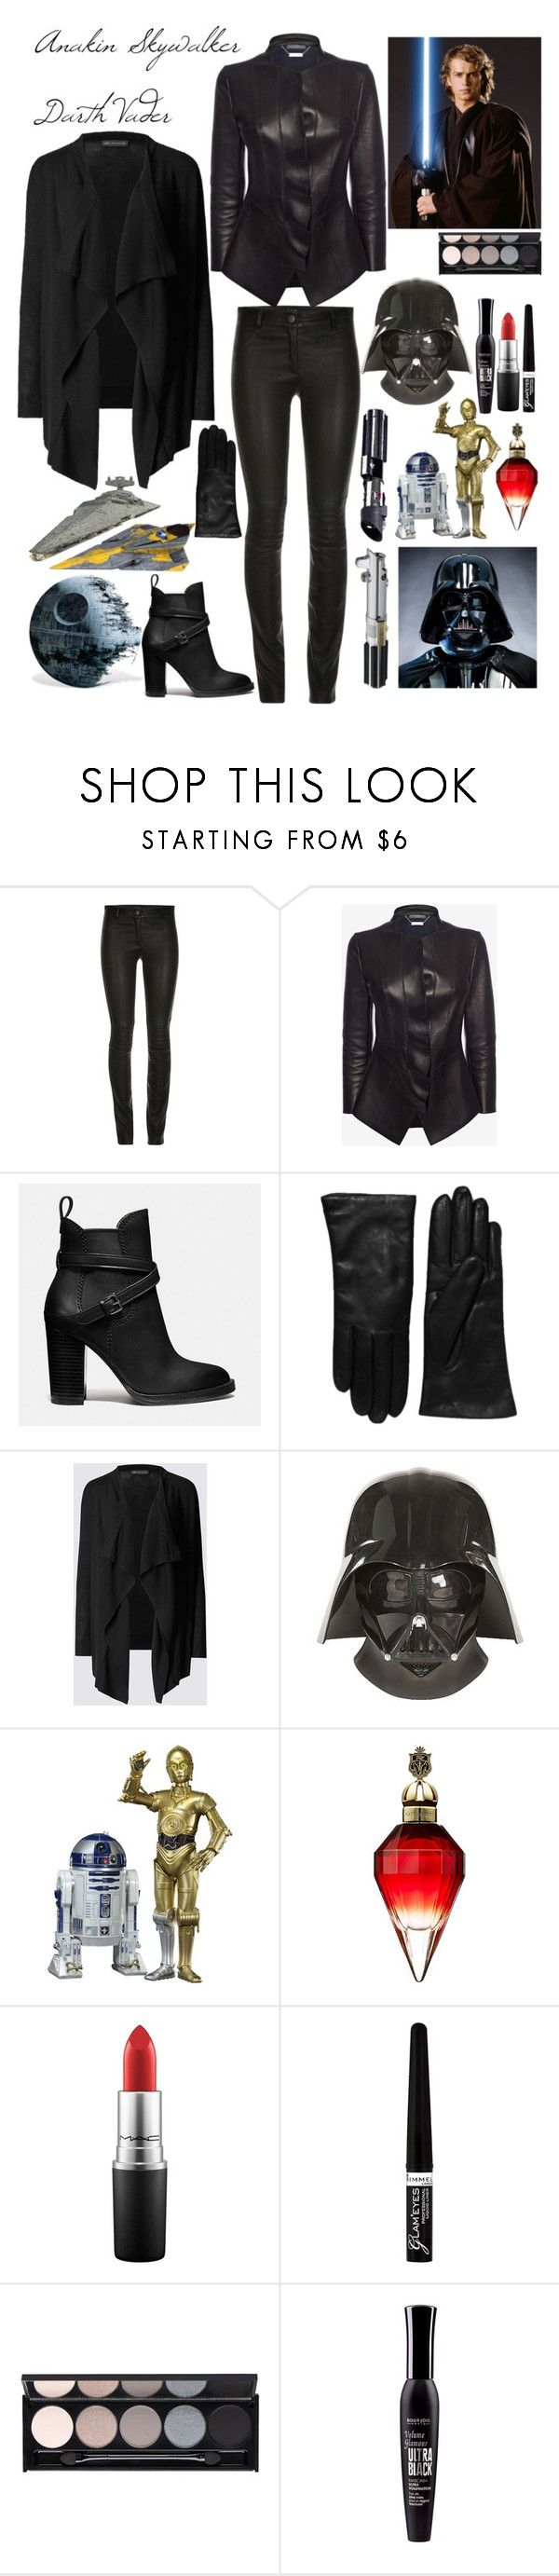 """""""Anakin Skywalker / Darth Vader"""" by lexisamskywalker on Polyvore featuring ElleSD, Alexander McQueen, Coach, Saks Fifth Avenue Collection, R2, MAC Cosmetics, Rimmel, Witchery and Bourjois"""